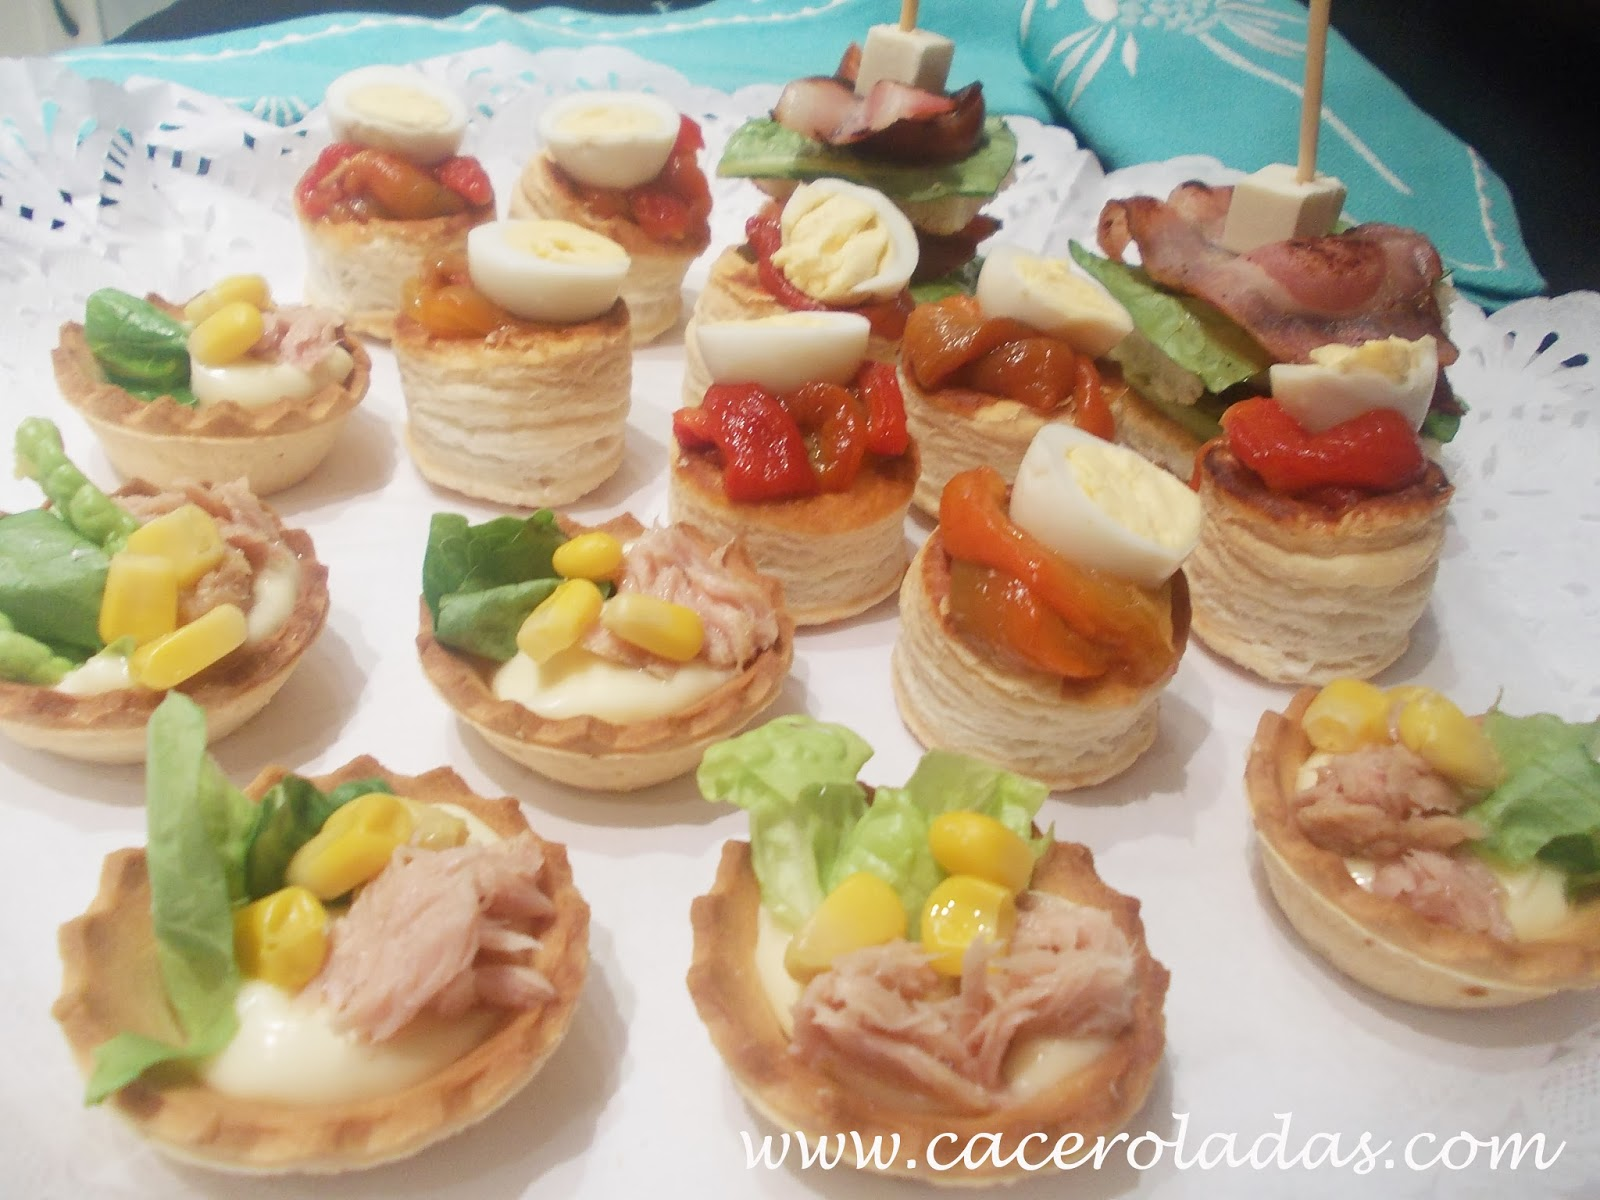 Canapes variados caceroladas for Canape suggestions